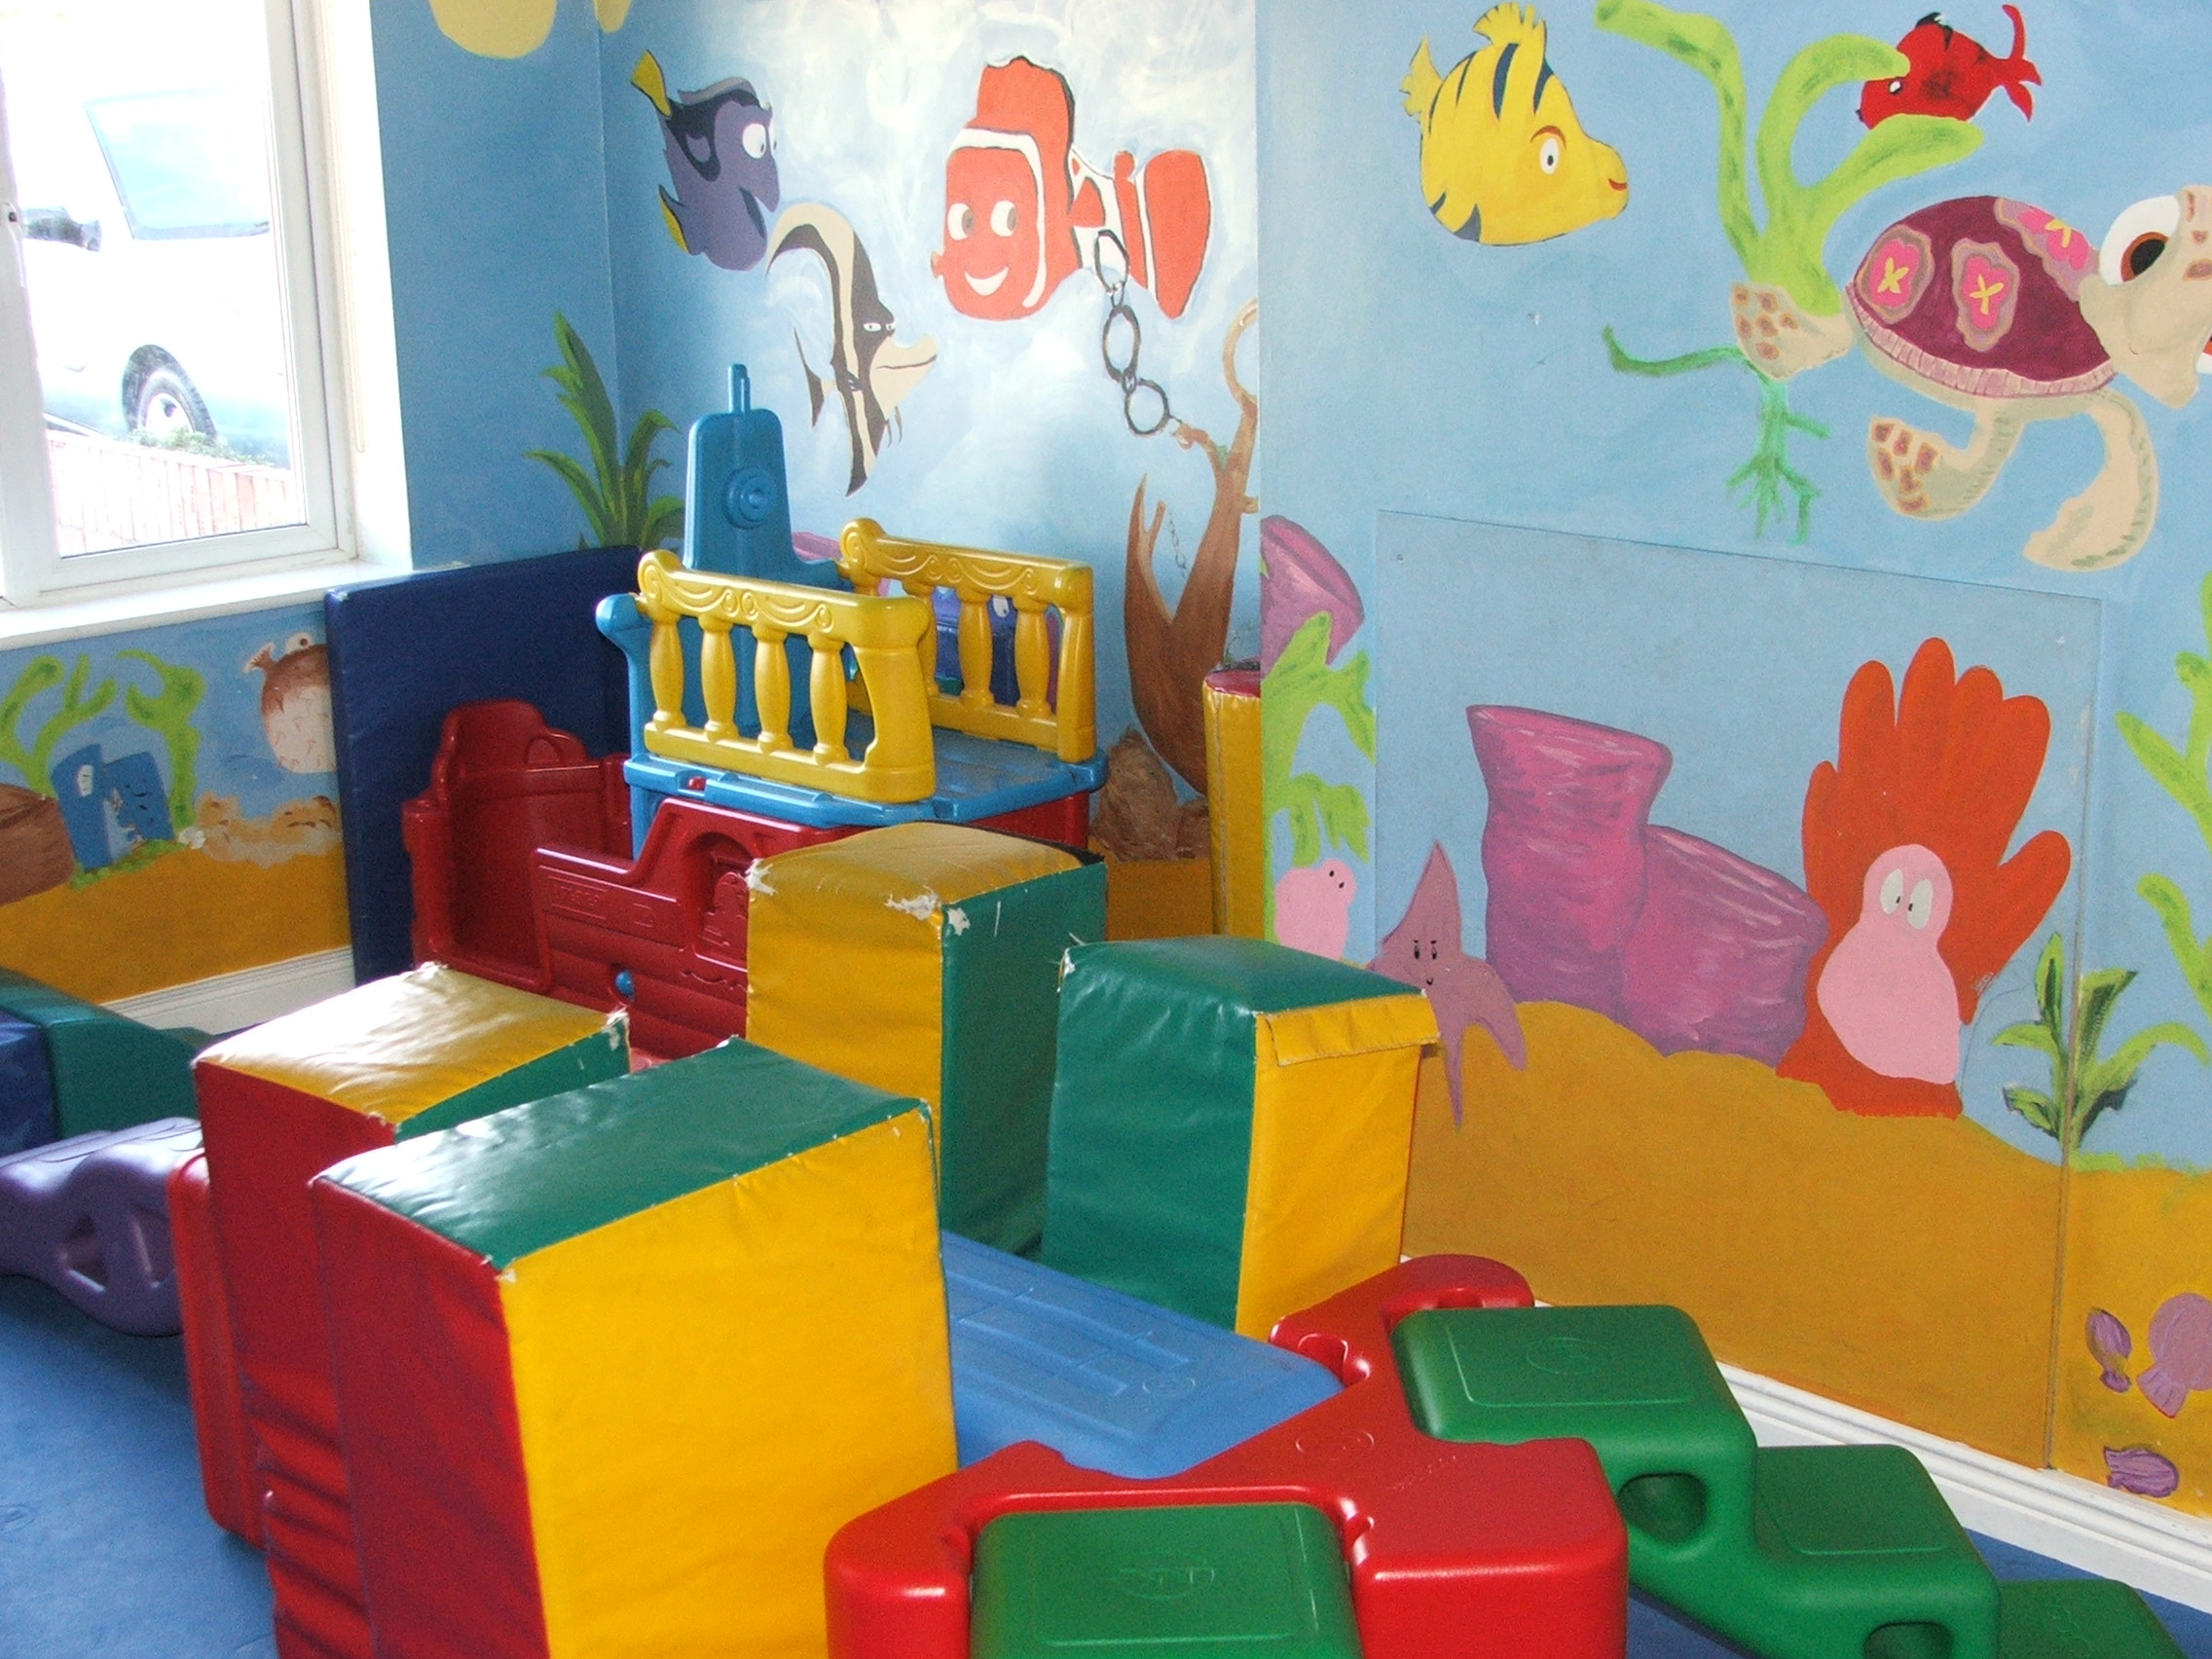 Childcare Centres near Stonebridge Park Tube Station London